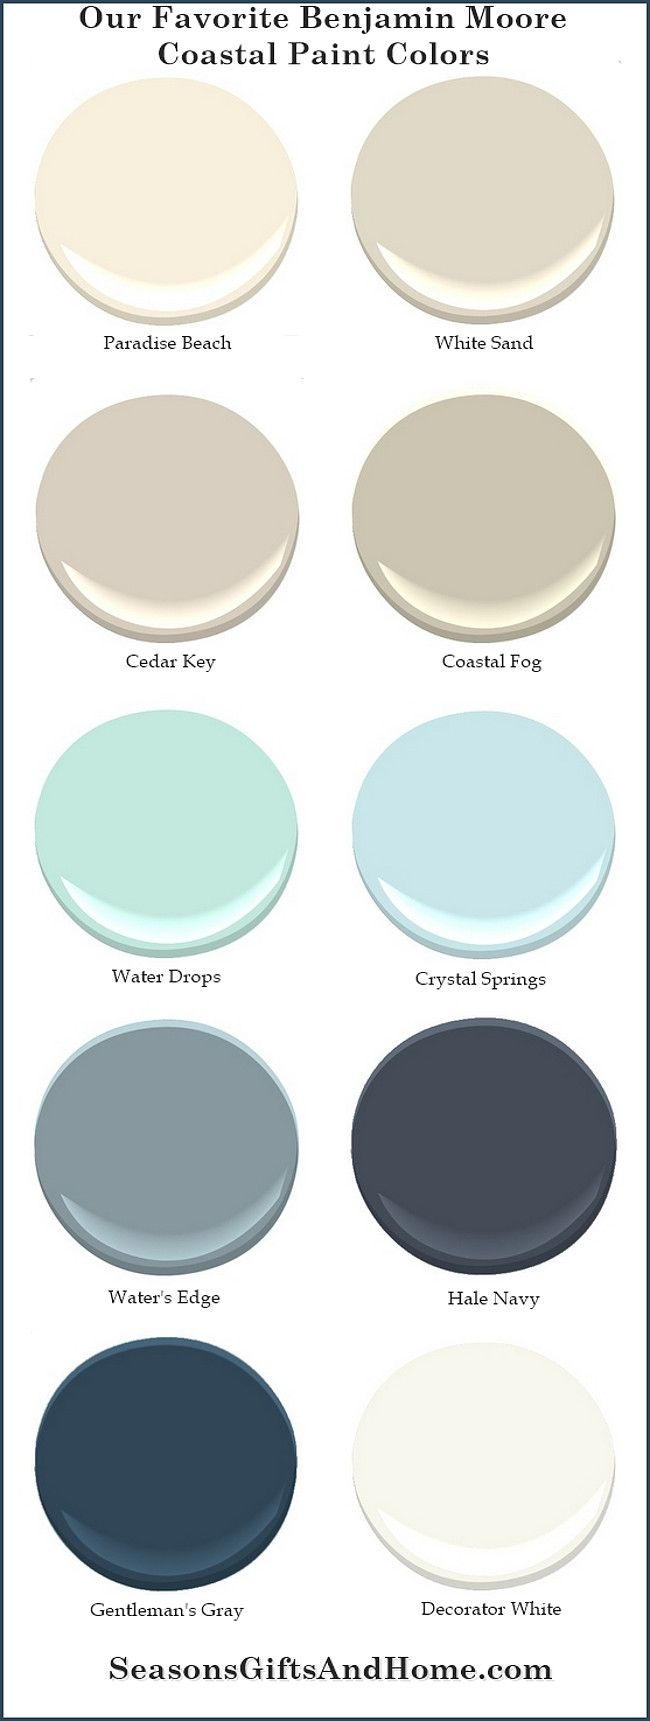 Inspiring Interior Paint Colour Ideas From Seasons Gifts and Home - HomeBunch